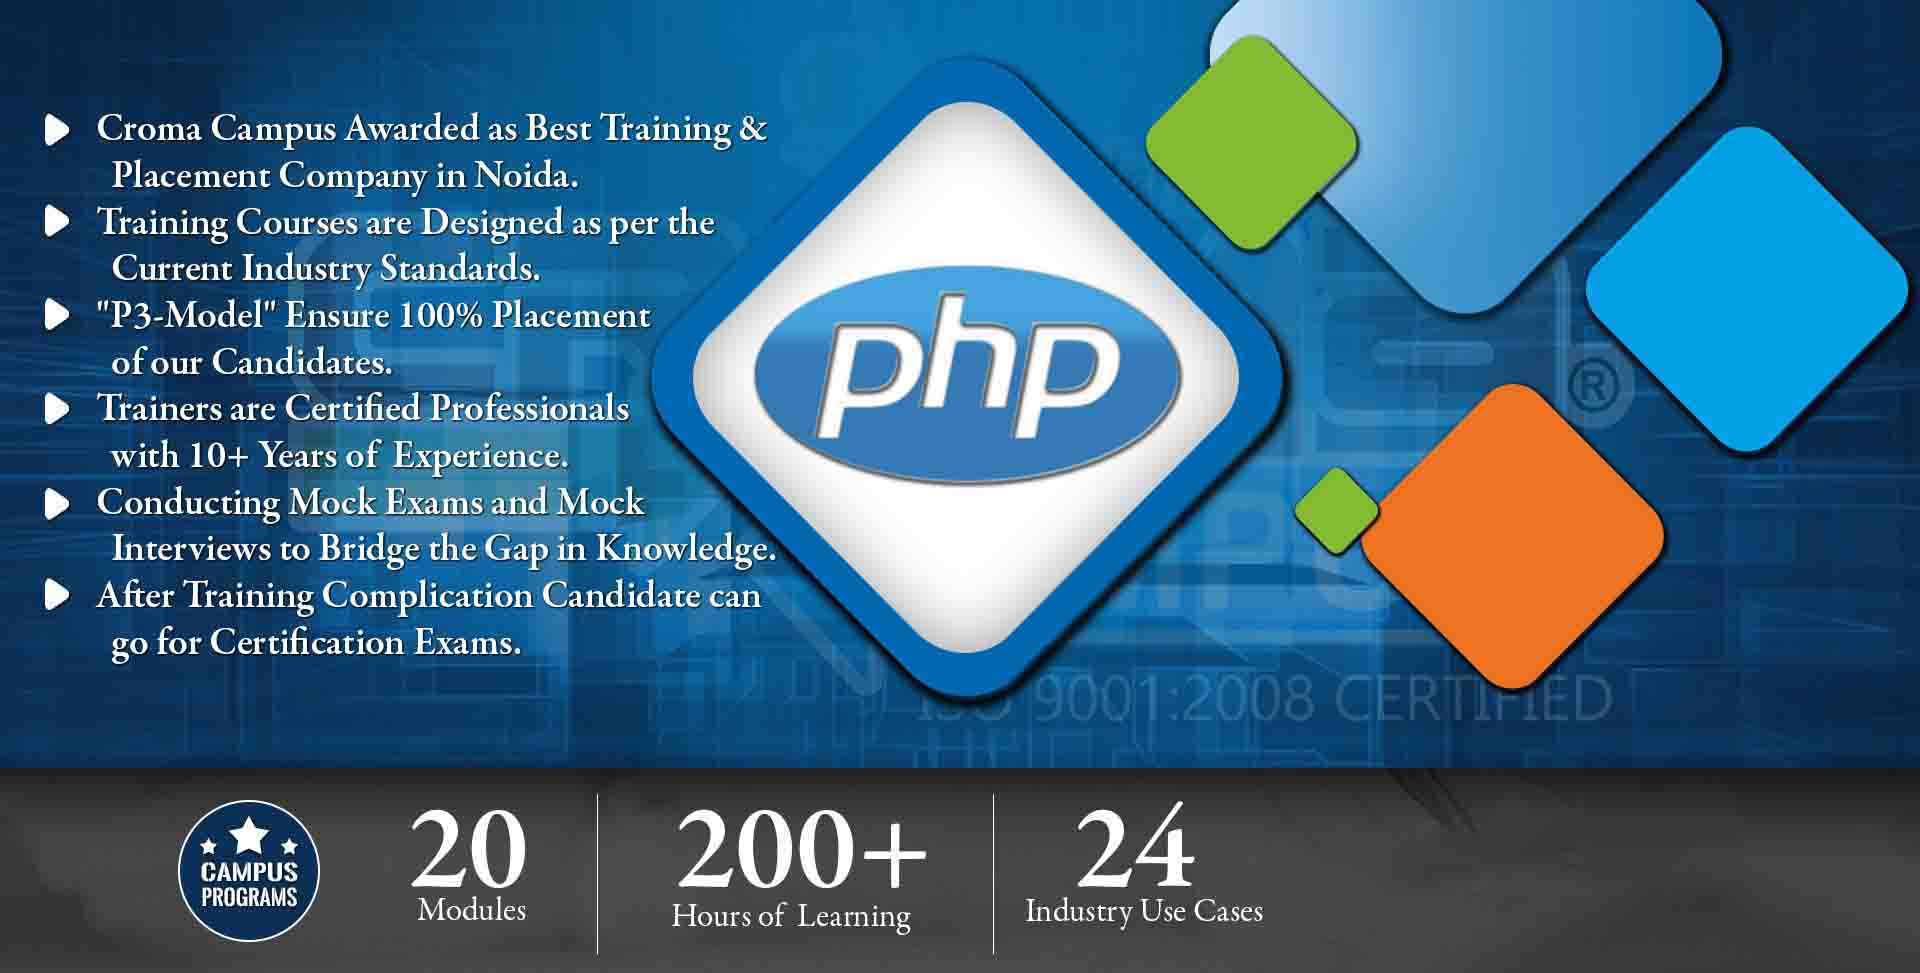 PHP Training in Delhi NCR- Croma Campus